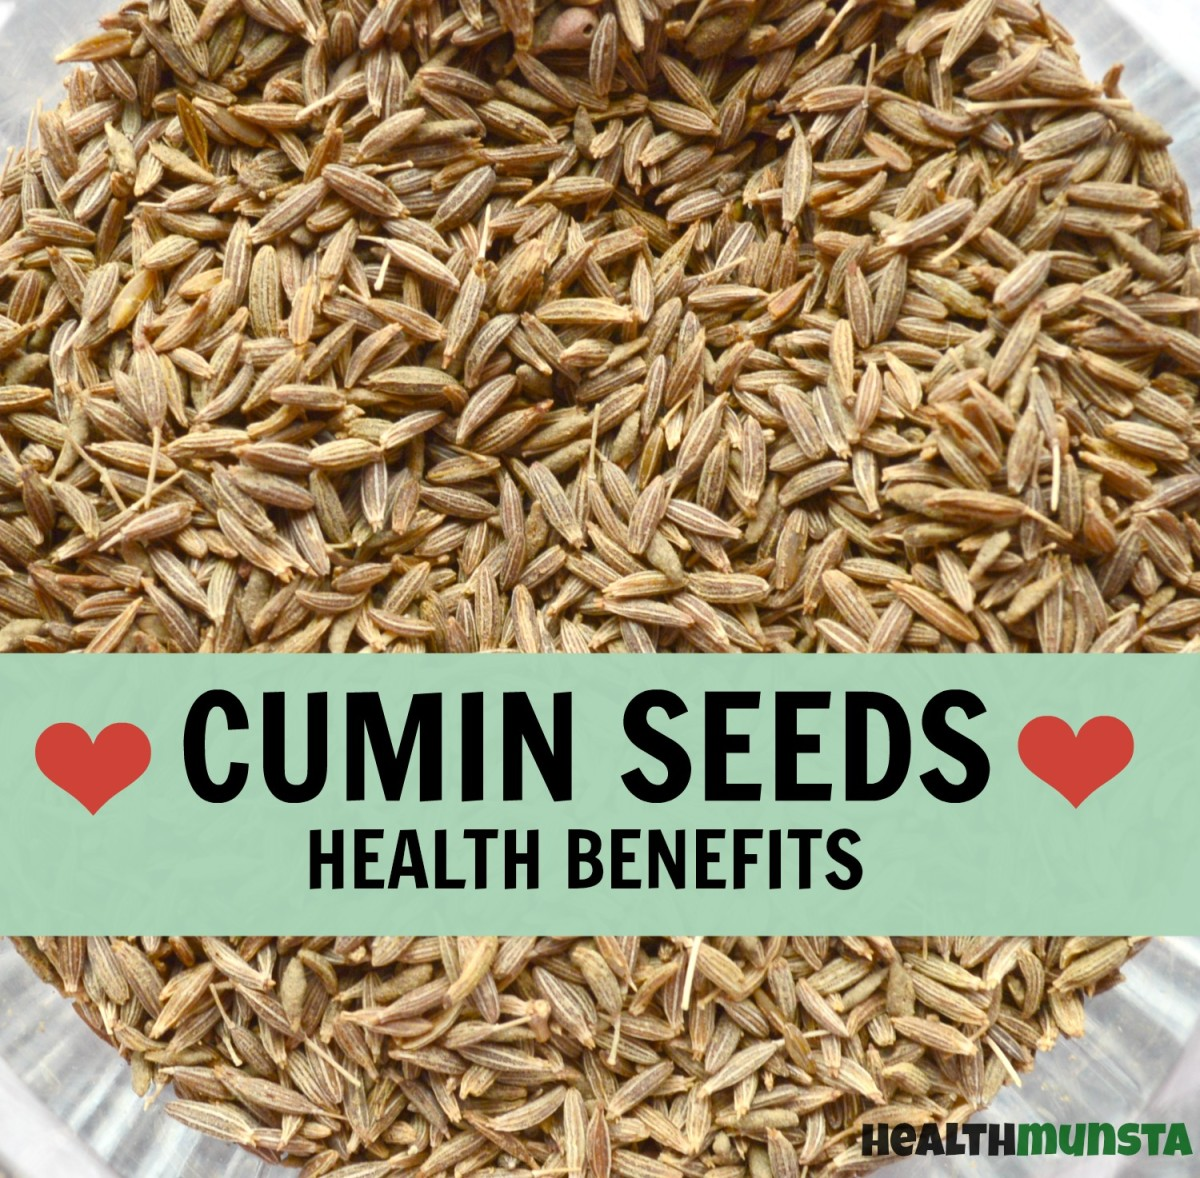 Cumin seeds have a wide variety of medicinal values and benefits!